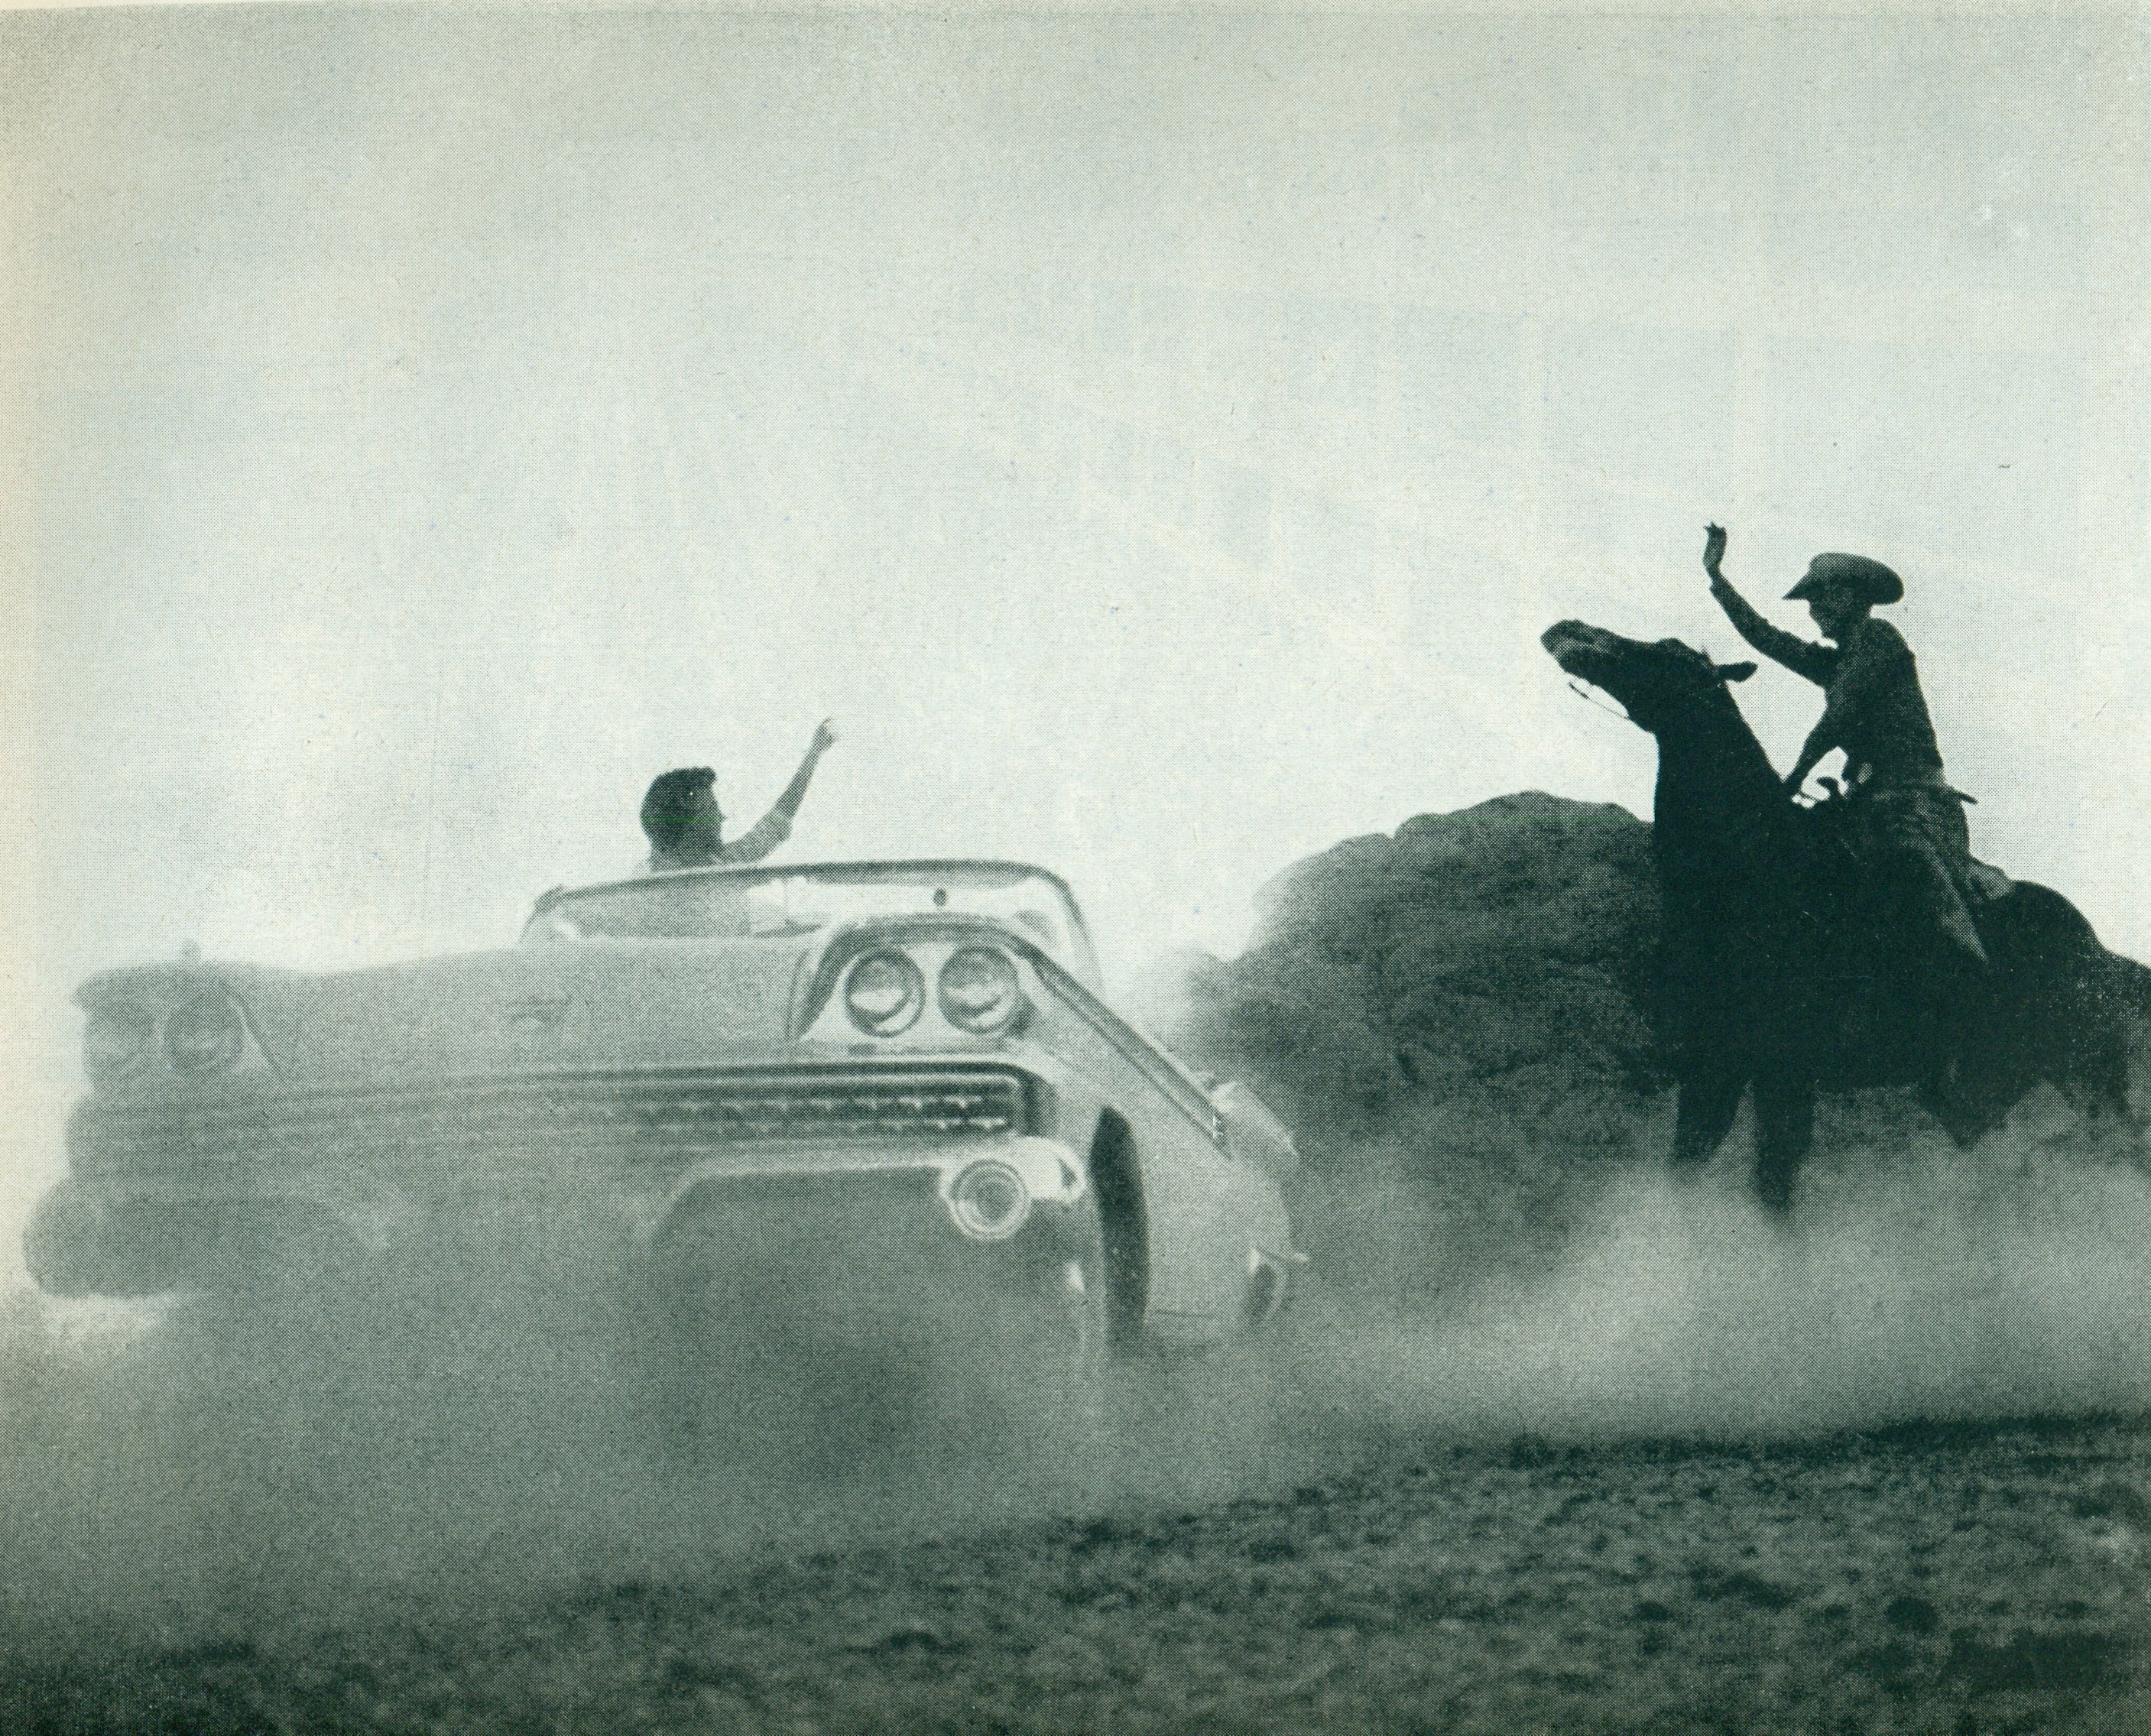 Cowboys and Classic Cars